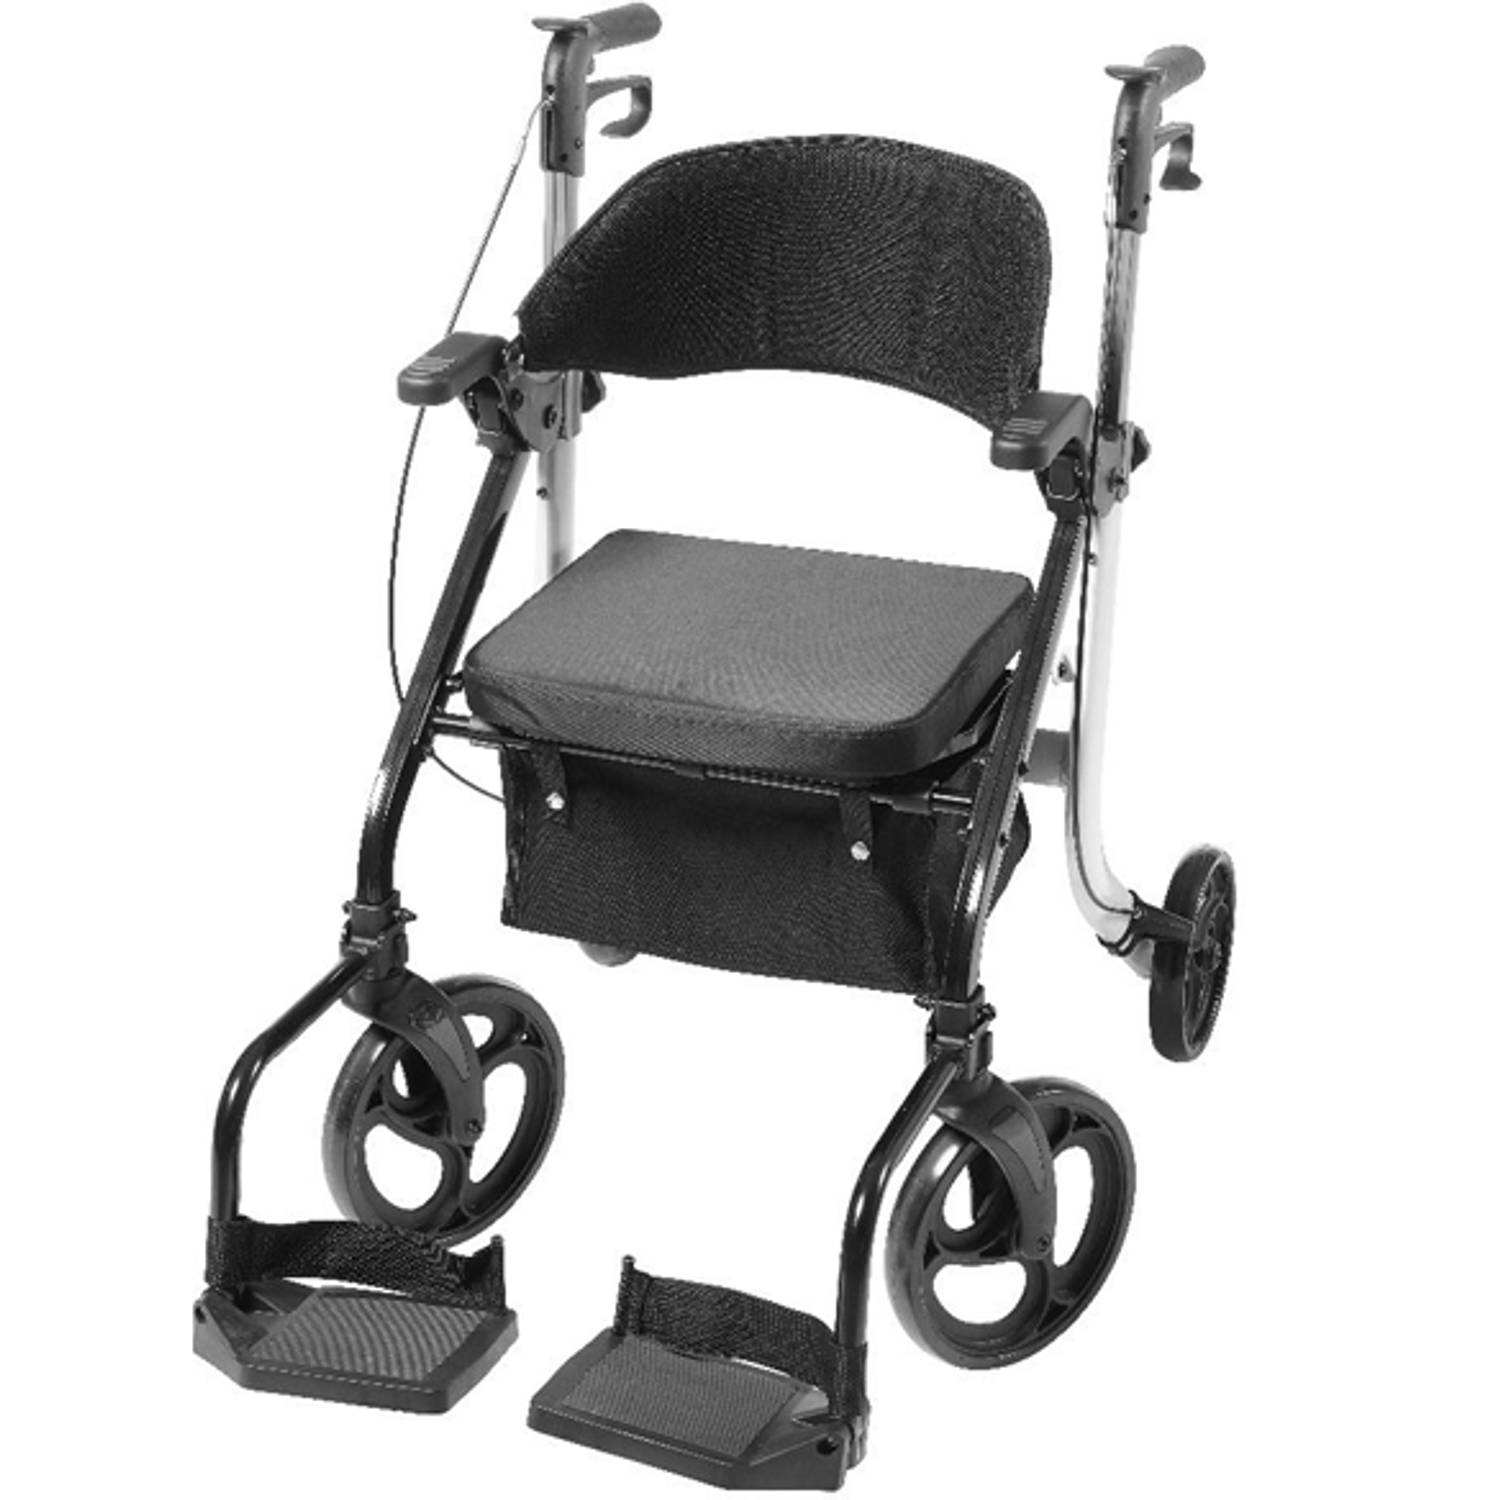 Image of Vitility 2-in-1 Rollator